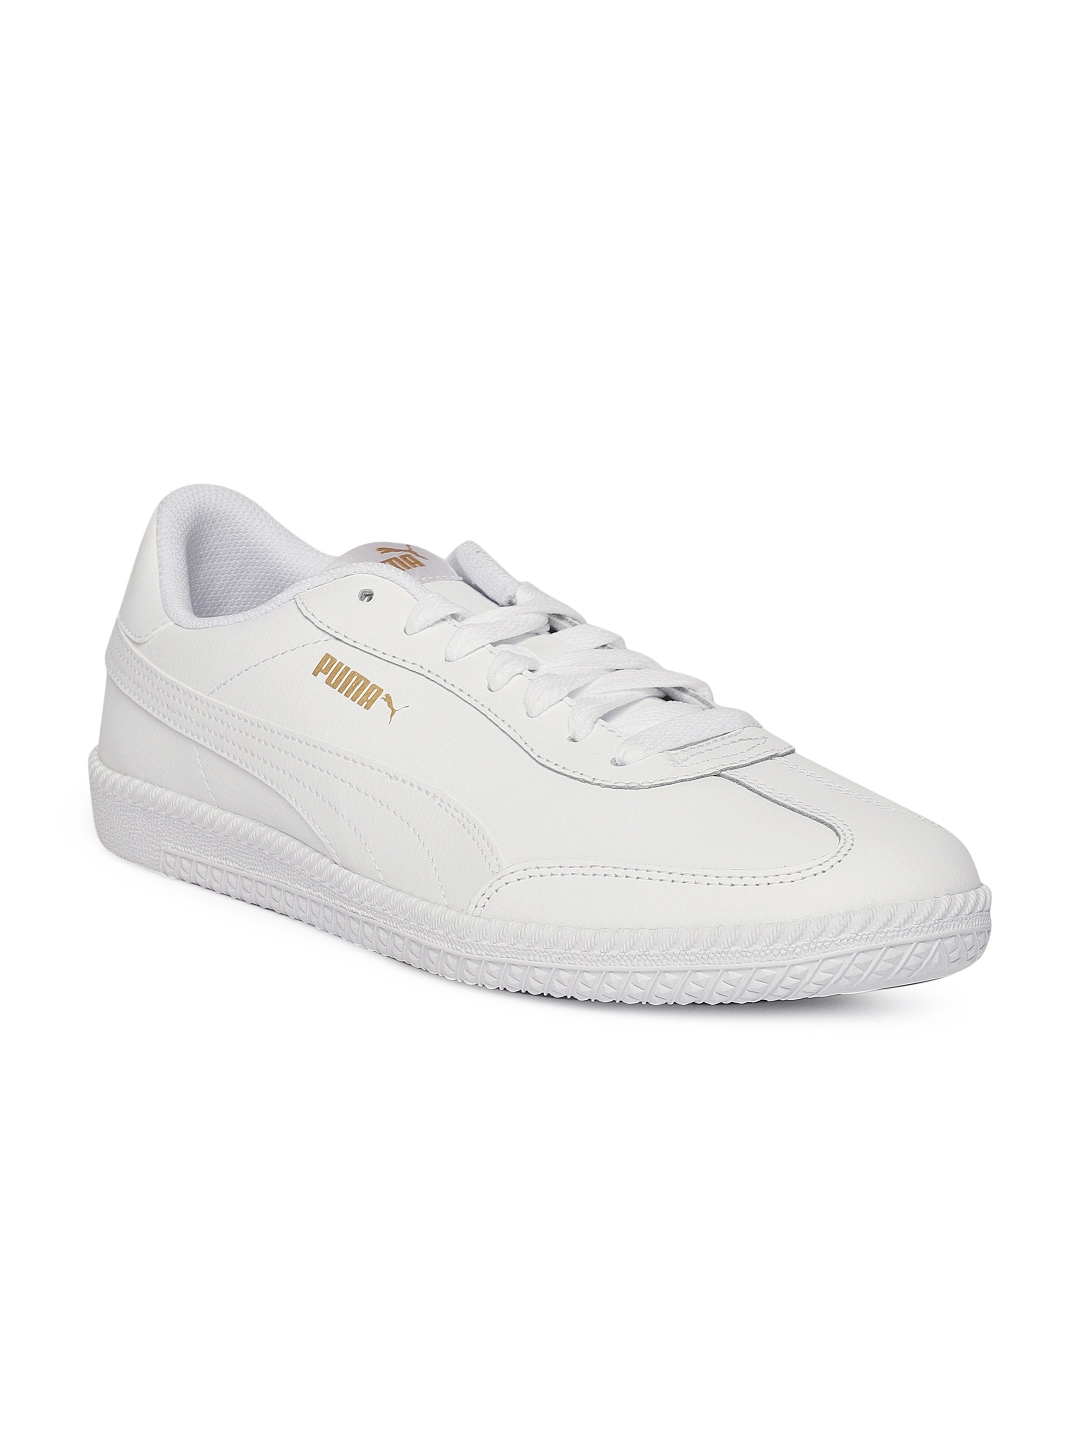 f95ed5bac26f Puma Shoes - Buy Puma Shoes for Men   Women Online in India